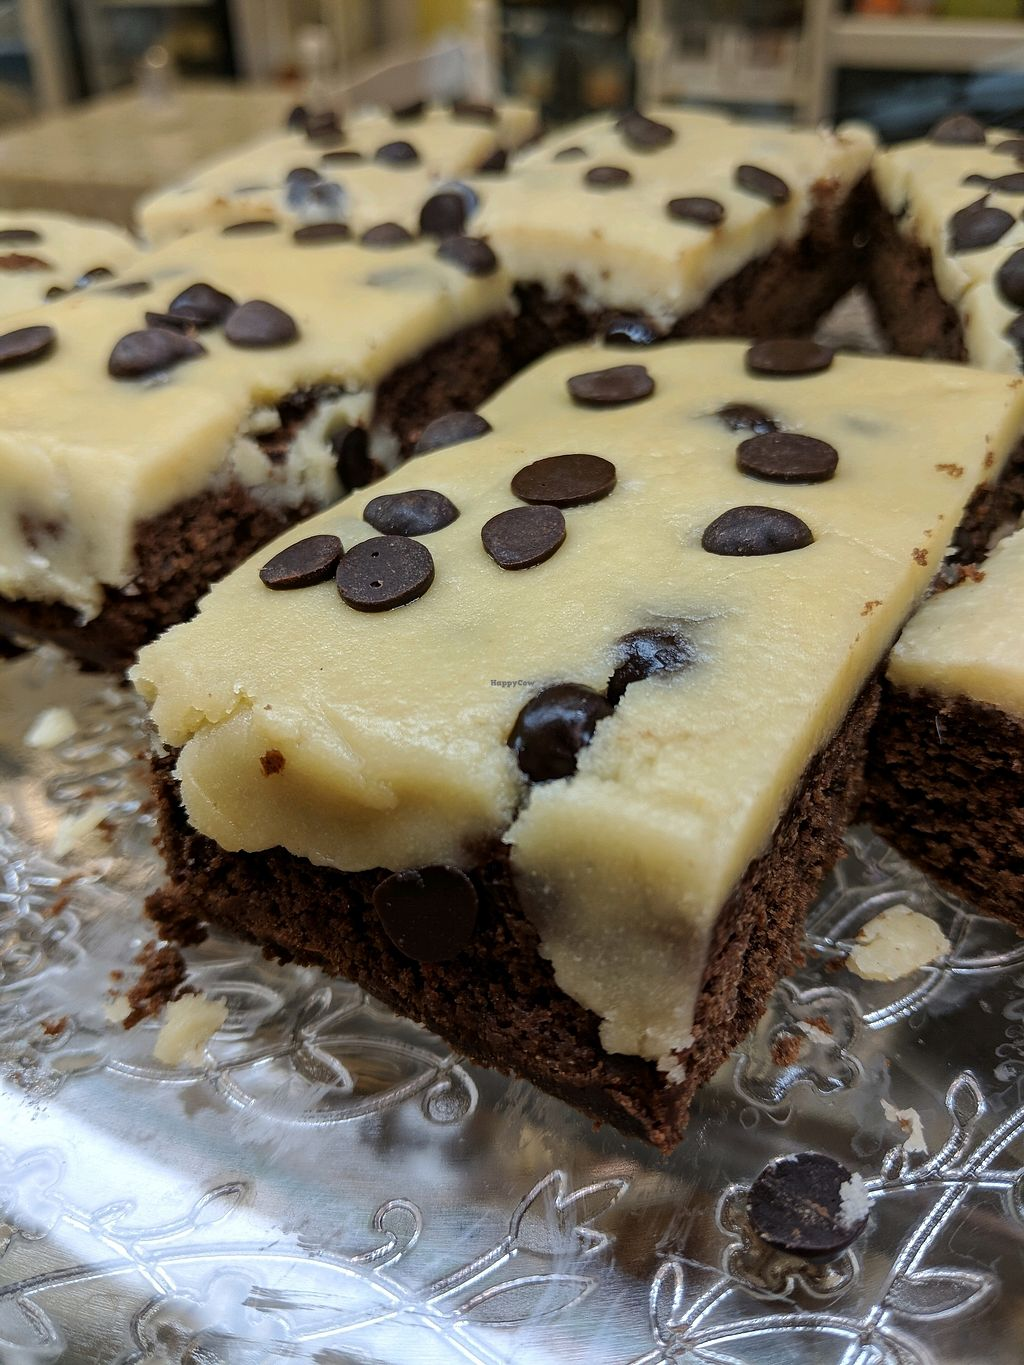 """Photo of Farplace Vegan Store  by <a href=""""/members/profile/HollyMusgrove"""">HollyMusgrove</a> <br/>Cookie dough brownies <br/> February 14, 2018  - <a href='/contact/abuse/image/62070/359354'>Report</a>"""